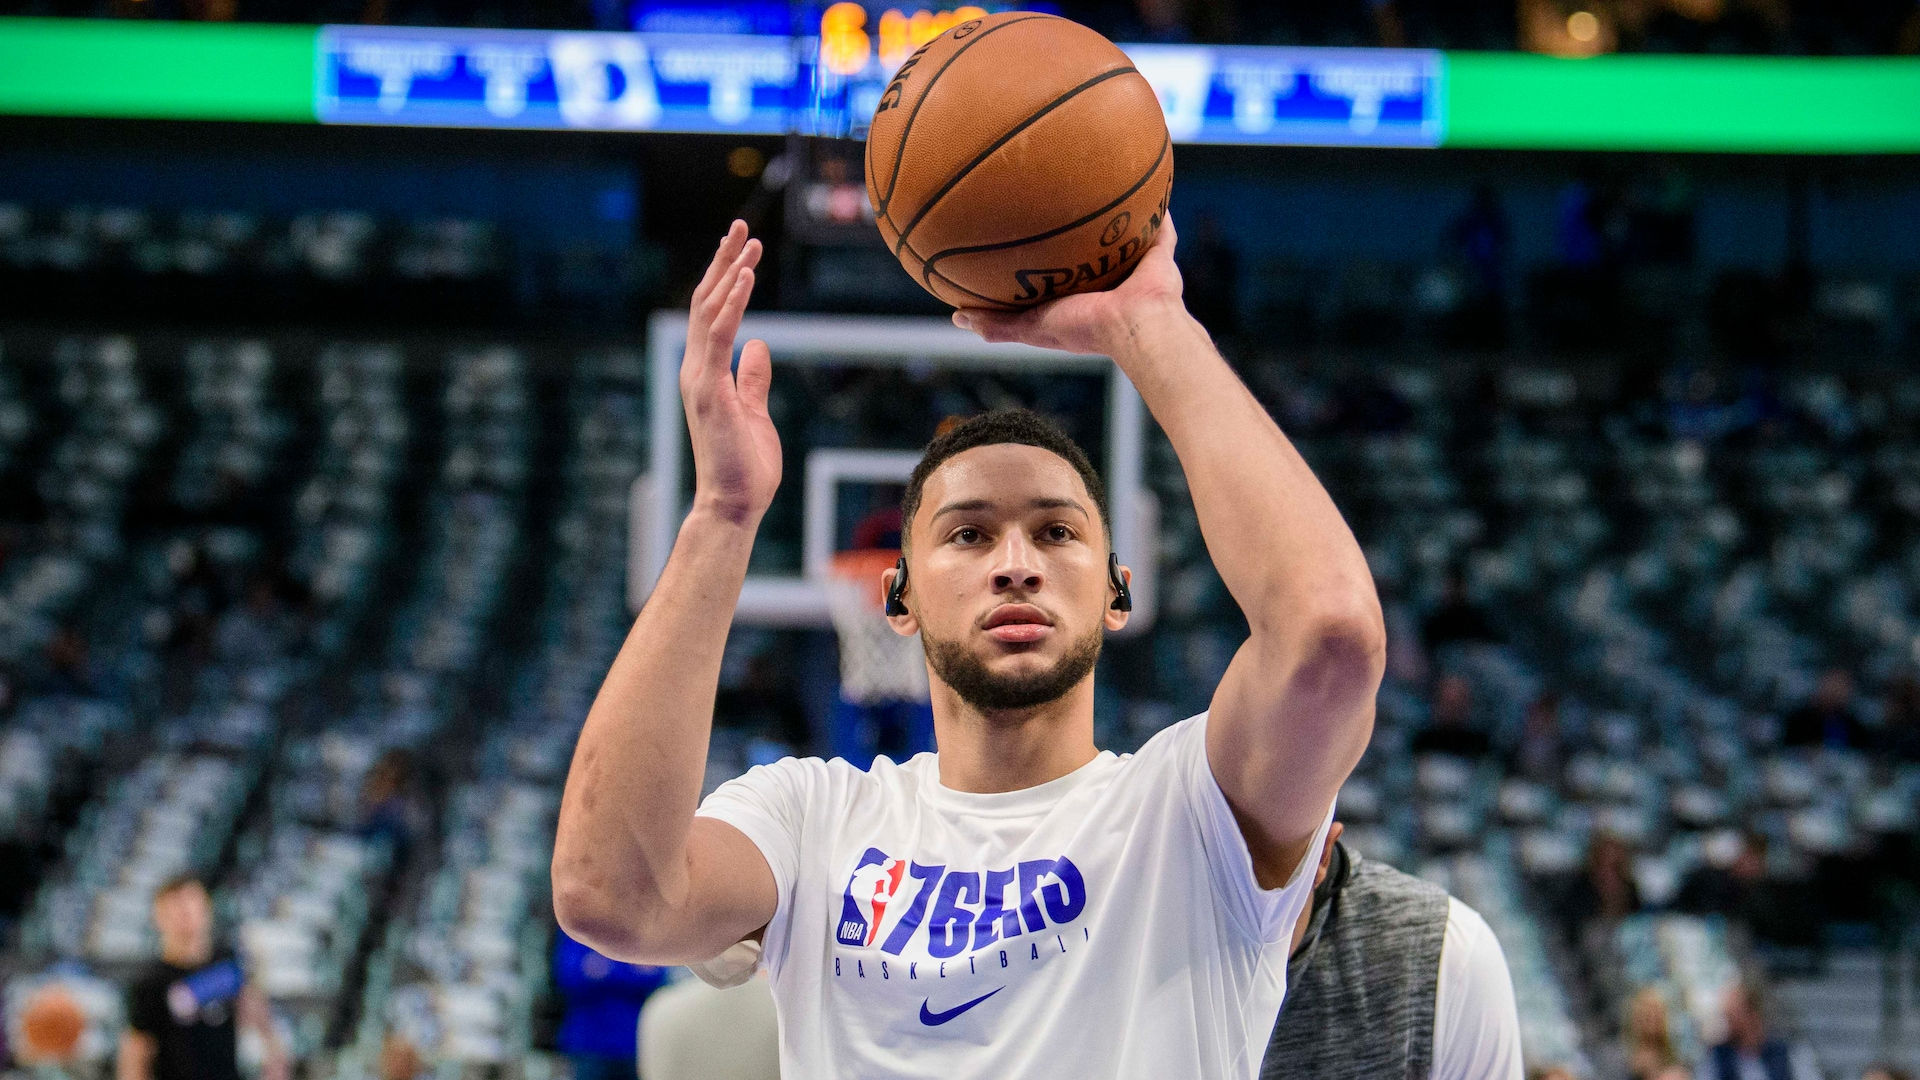 Sixers' Ben Simmons (back) to be reevaluated in 3 weeks